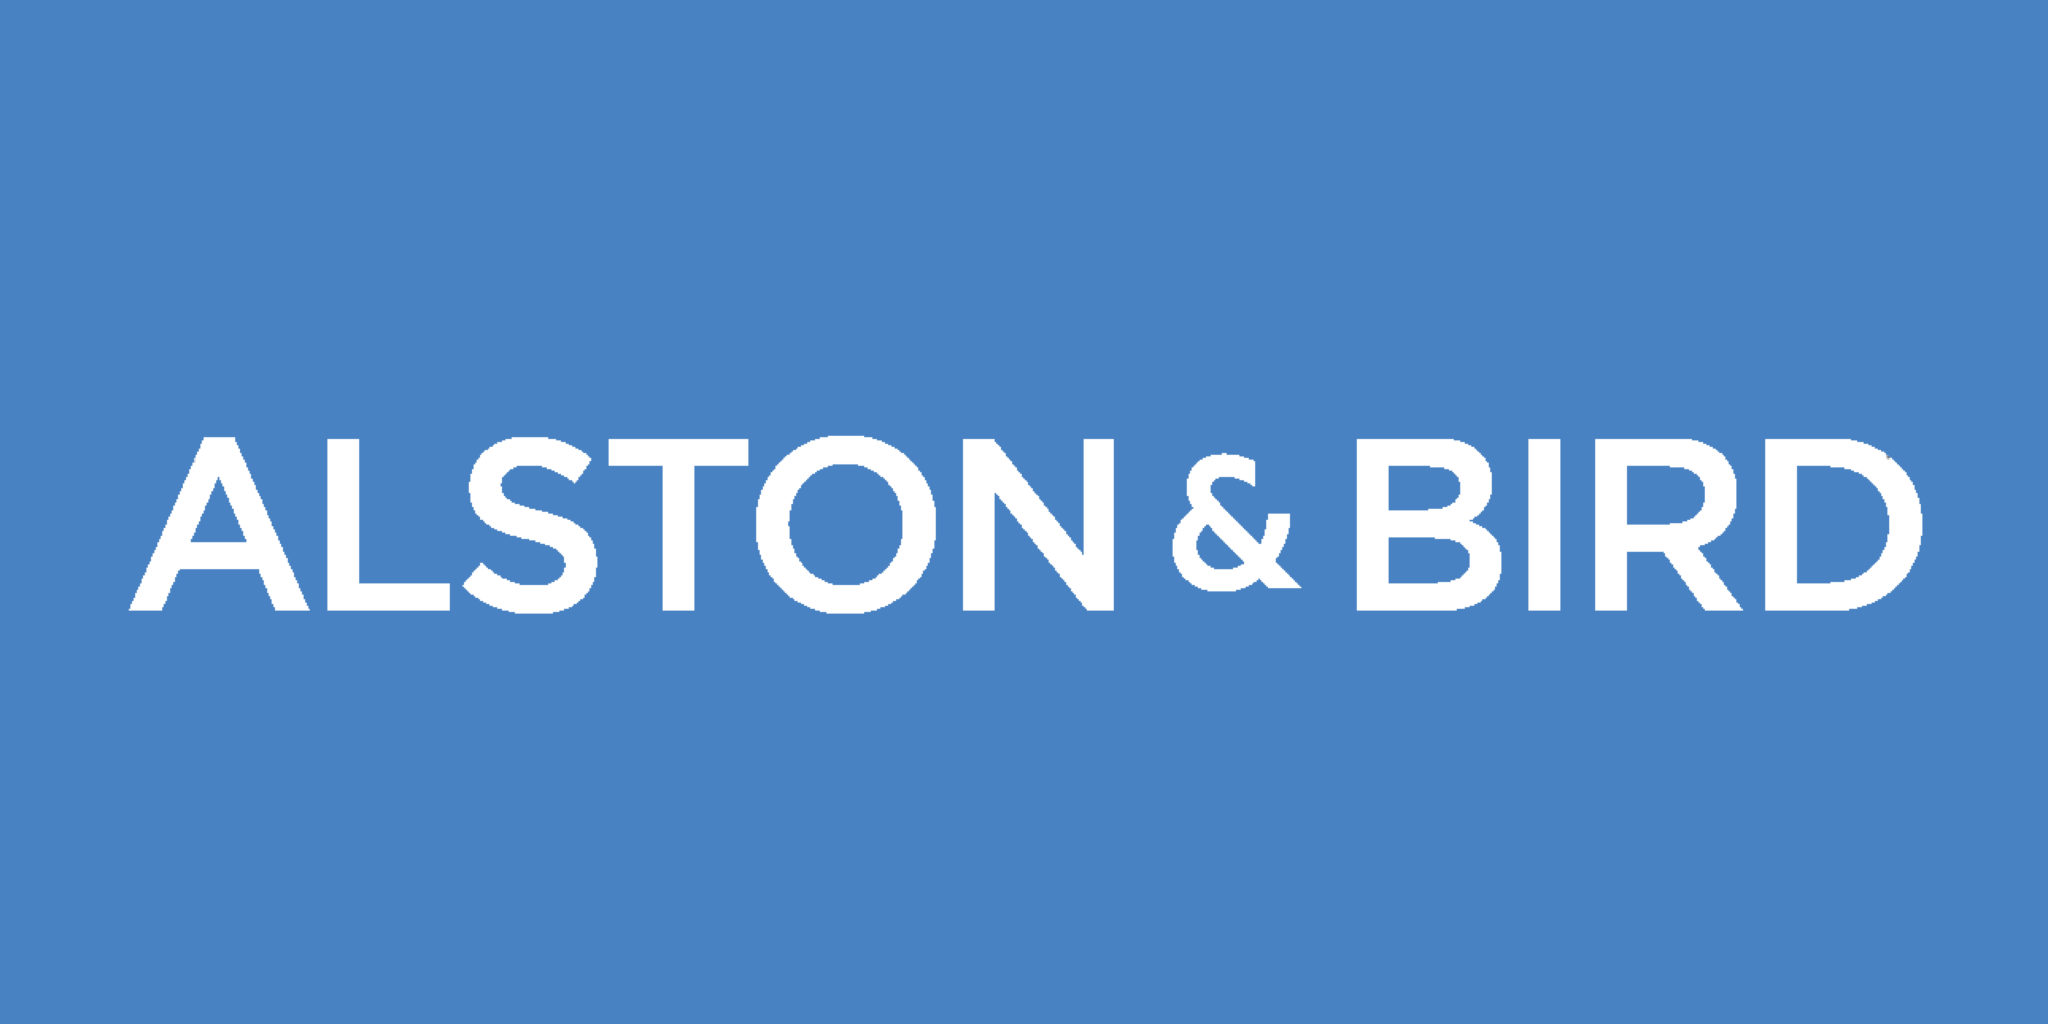 Alston & Bird attorney's support and advocacy on behalf of